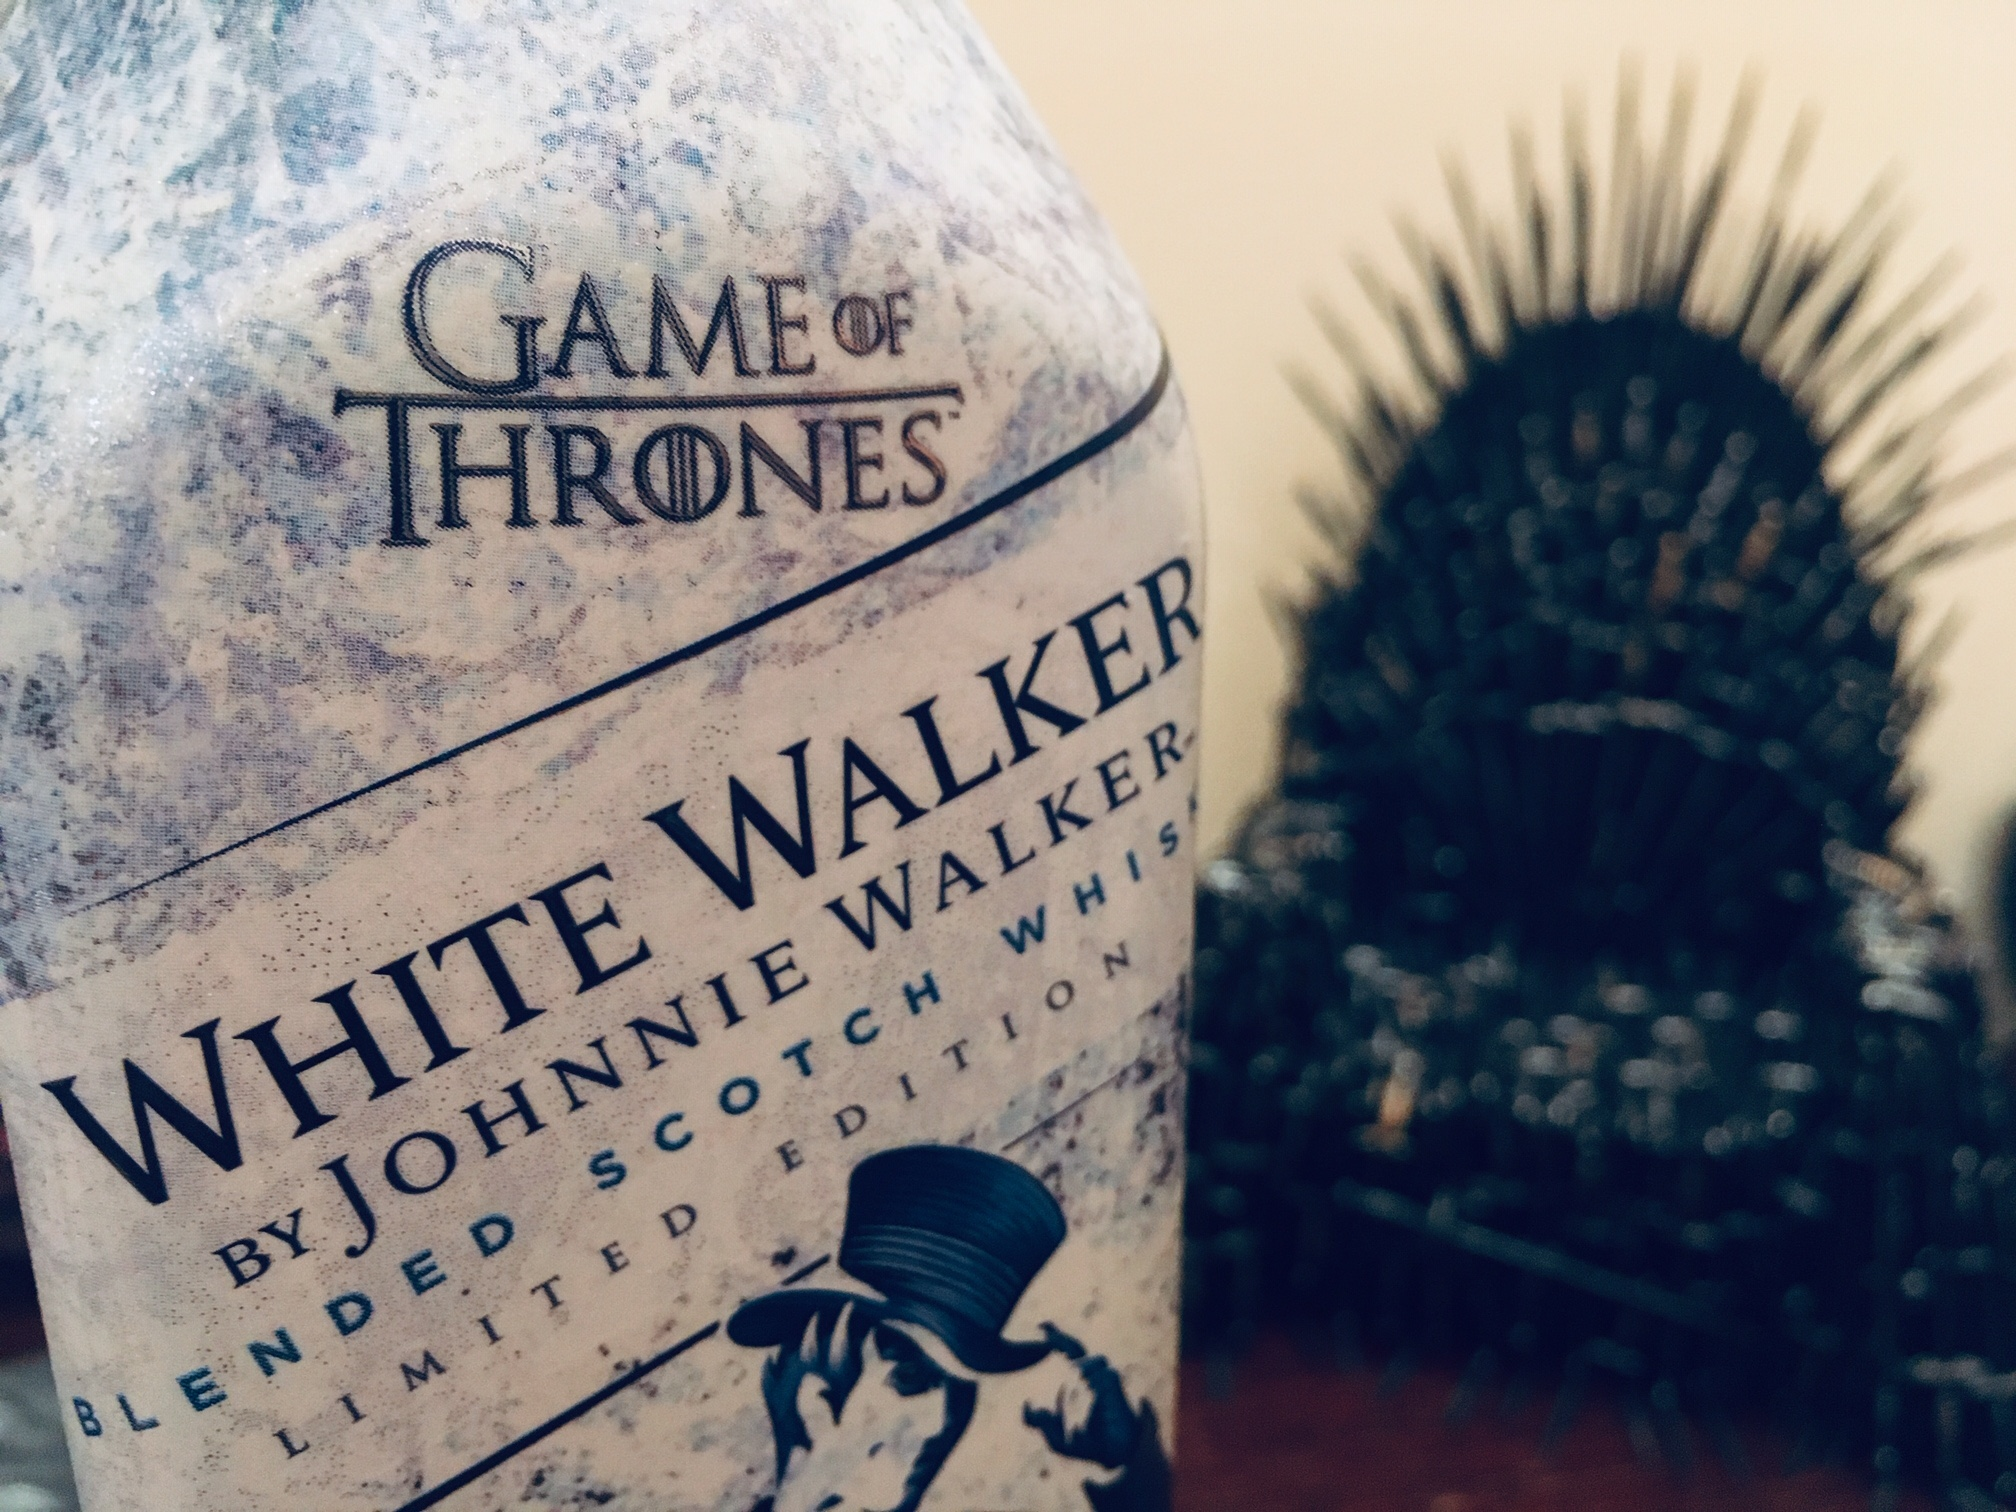 szmk_white_walker_johnnie_walker_whisky_scotch_game_of_thrones_tronok_harca_4.jpg